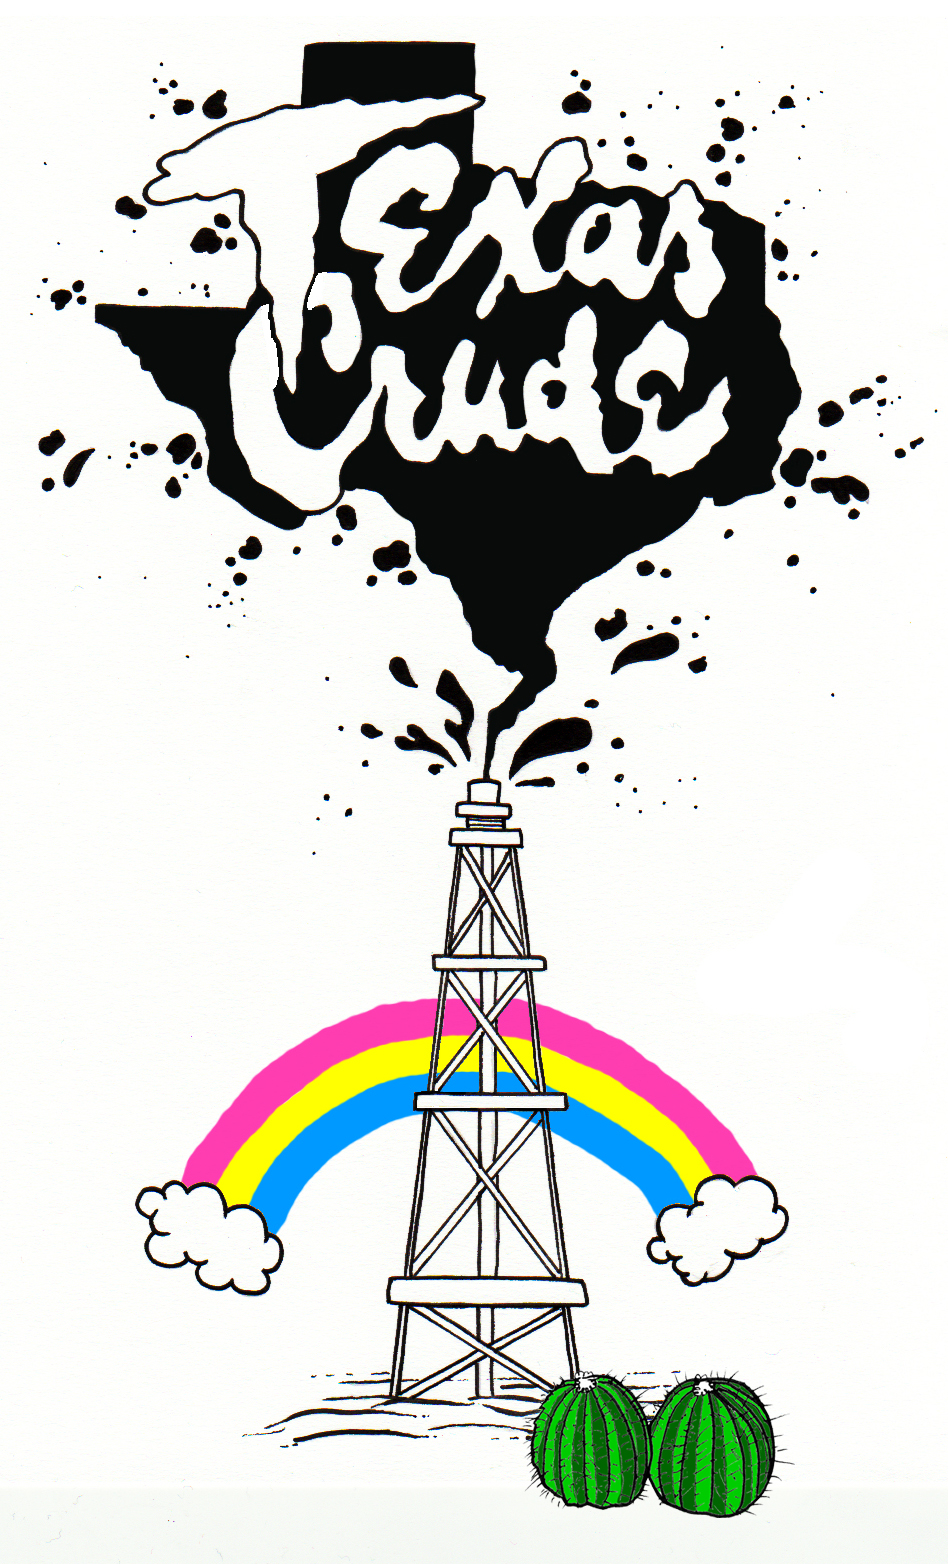 texas-crude-cropped.jpg